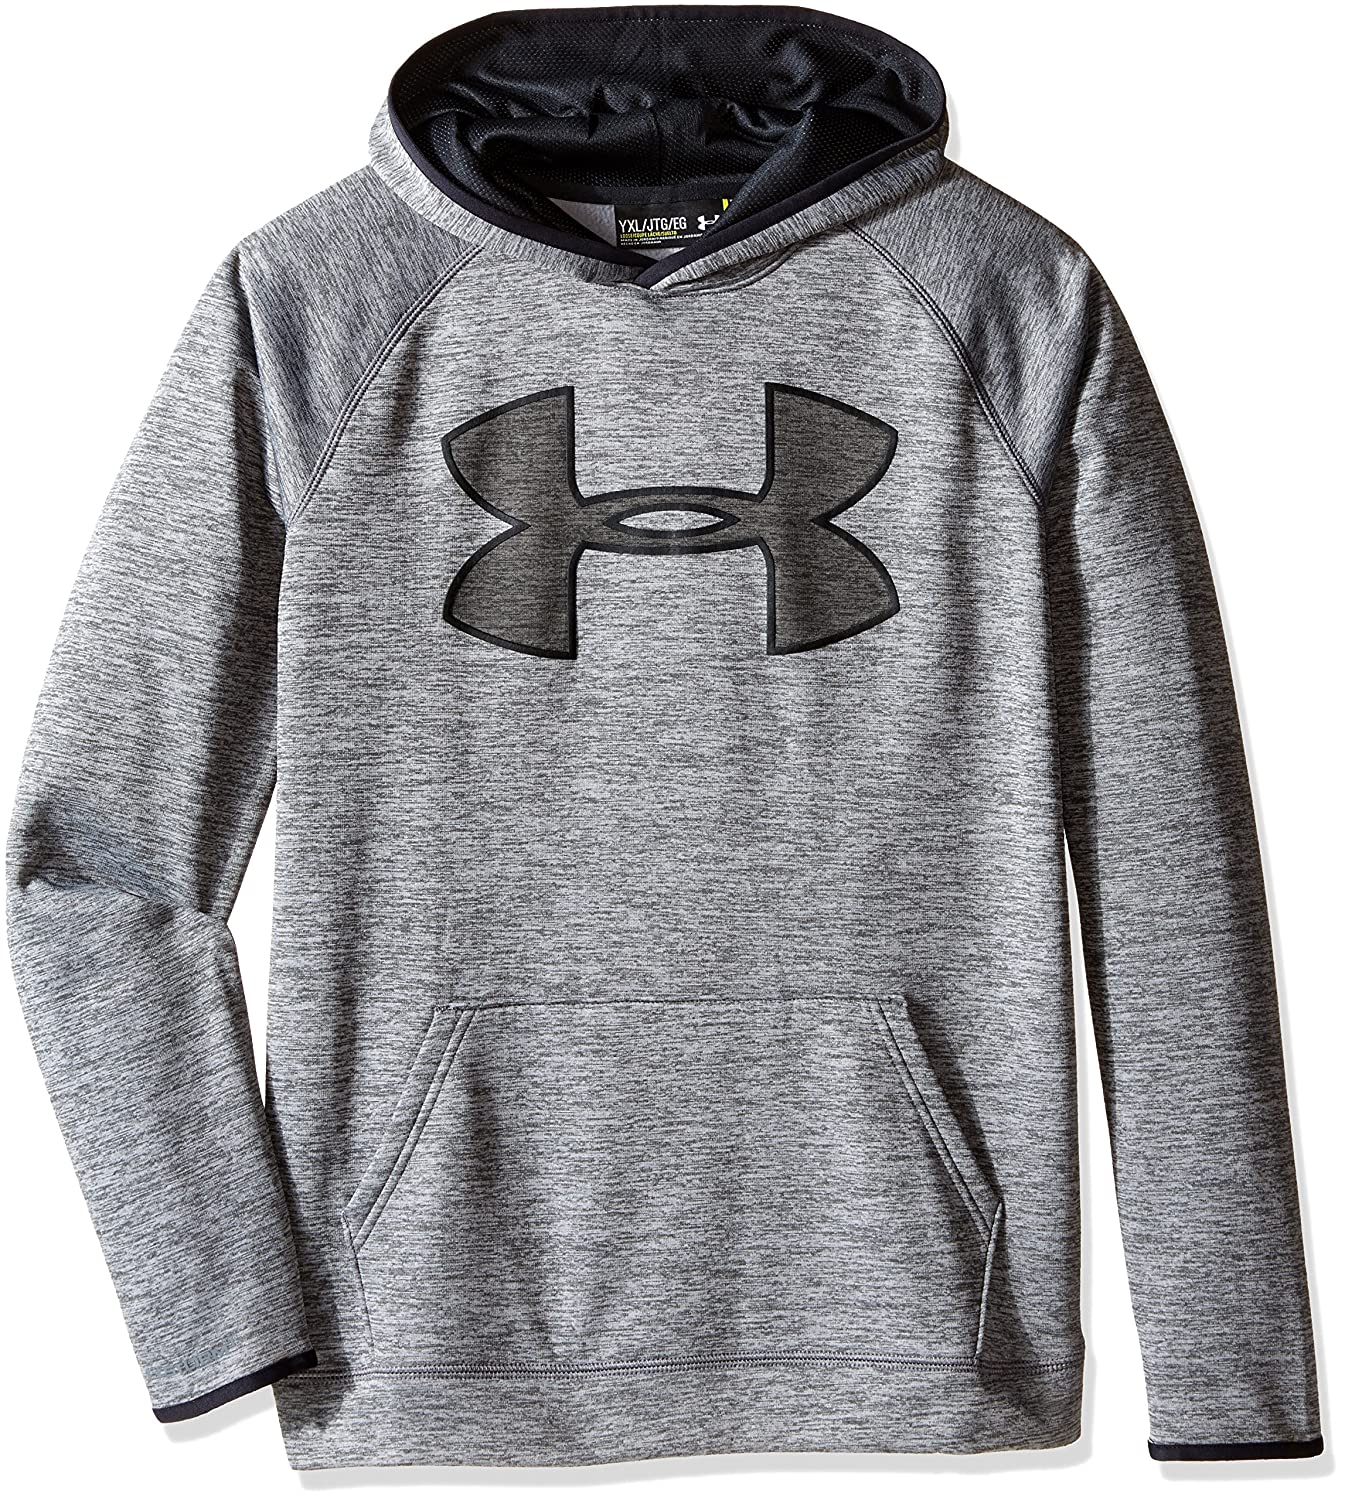 Under Armour Boys' Storm Armour Fleece Twist Highlight Hoodie Under Armour Apparel 1281028